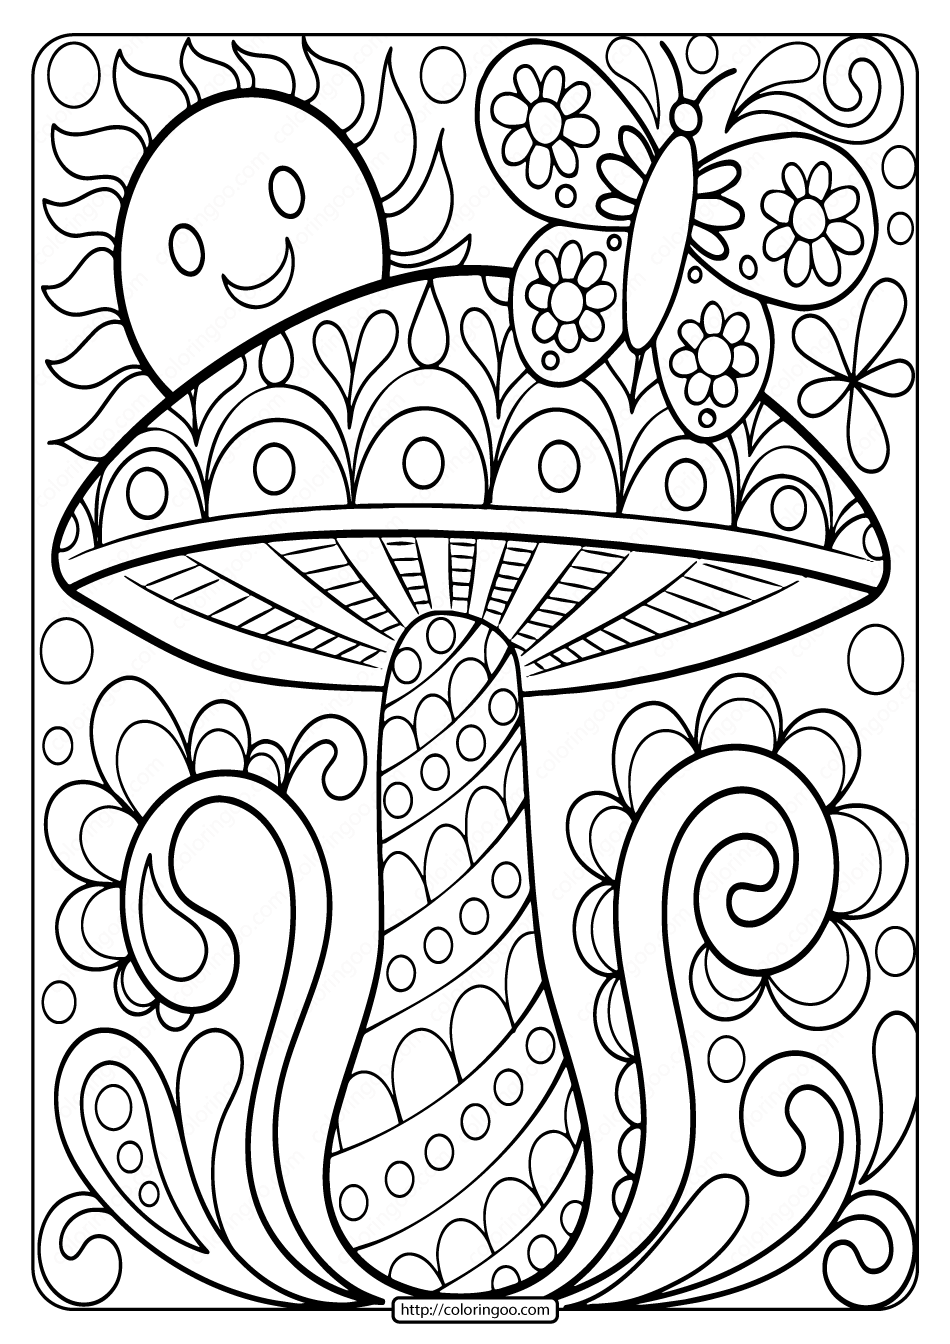 www coloring sheets monster coloring pages doodle art alley coloring sheets www